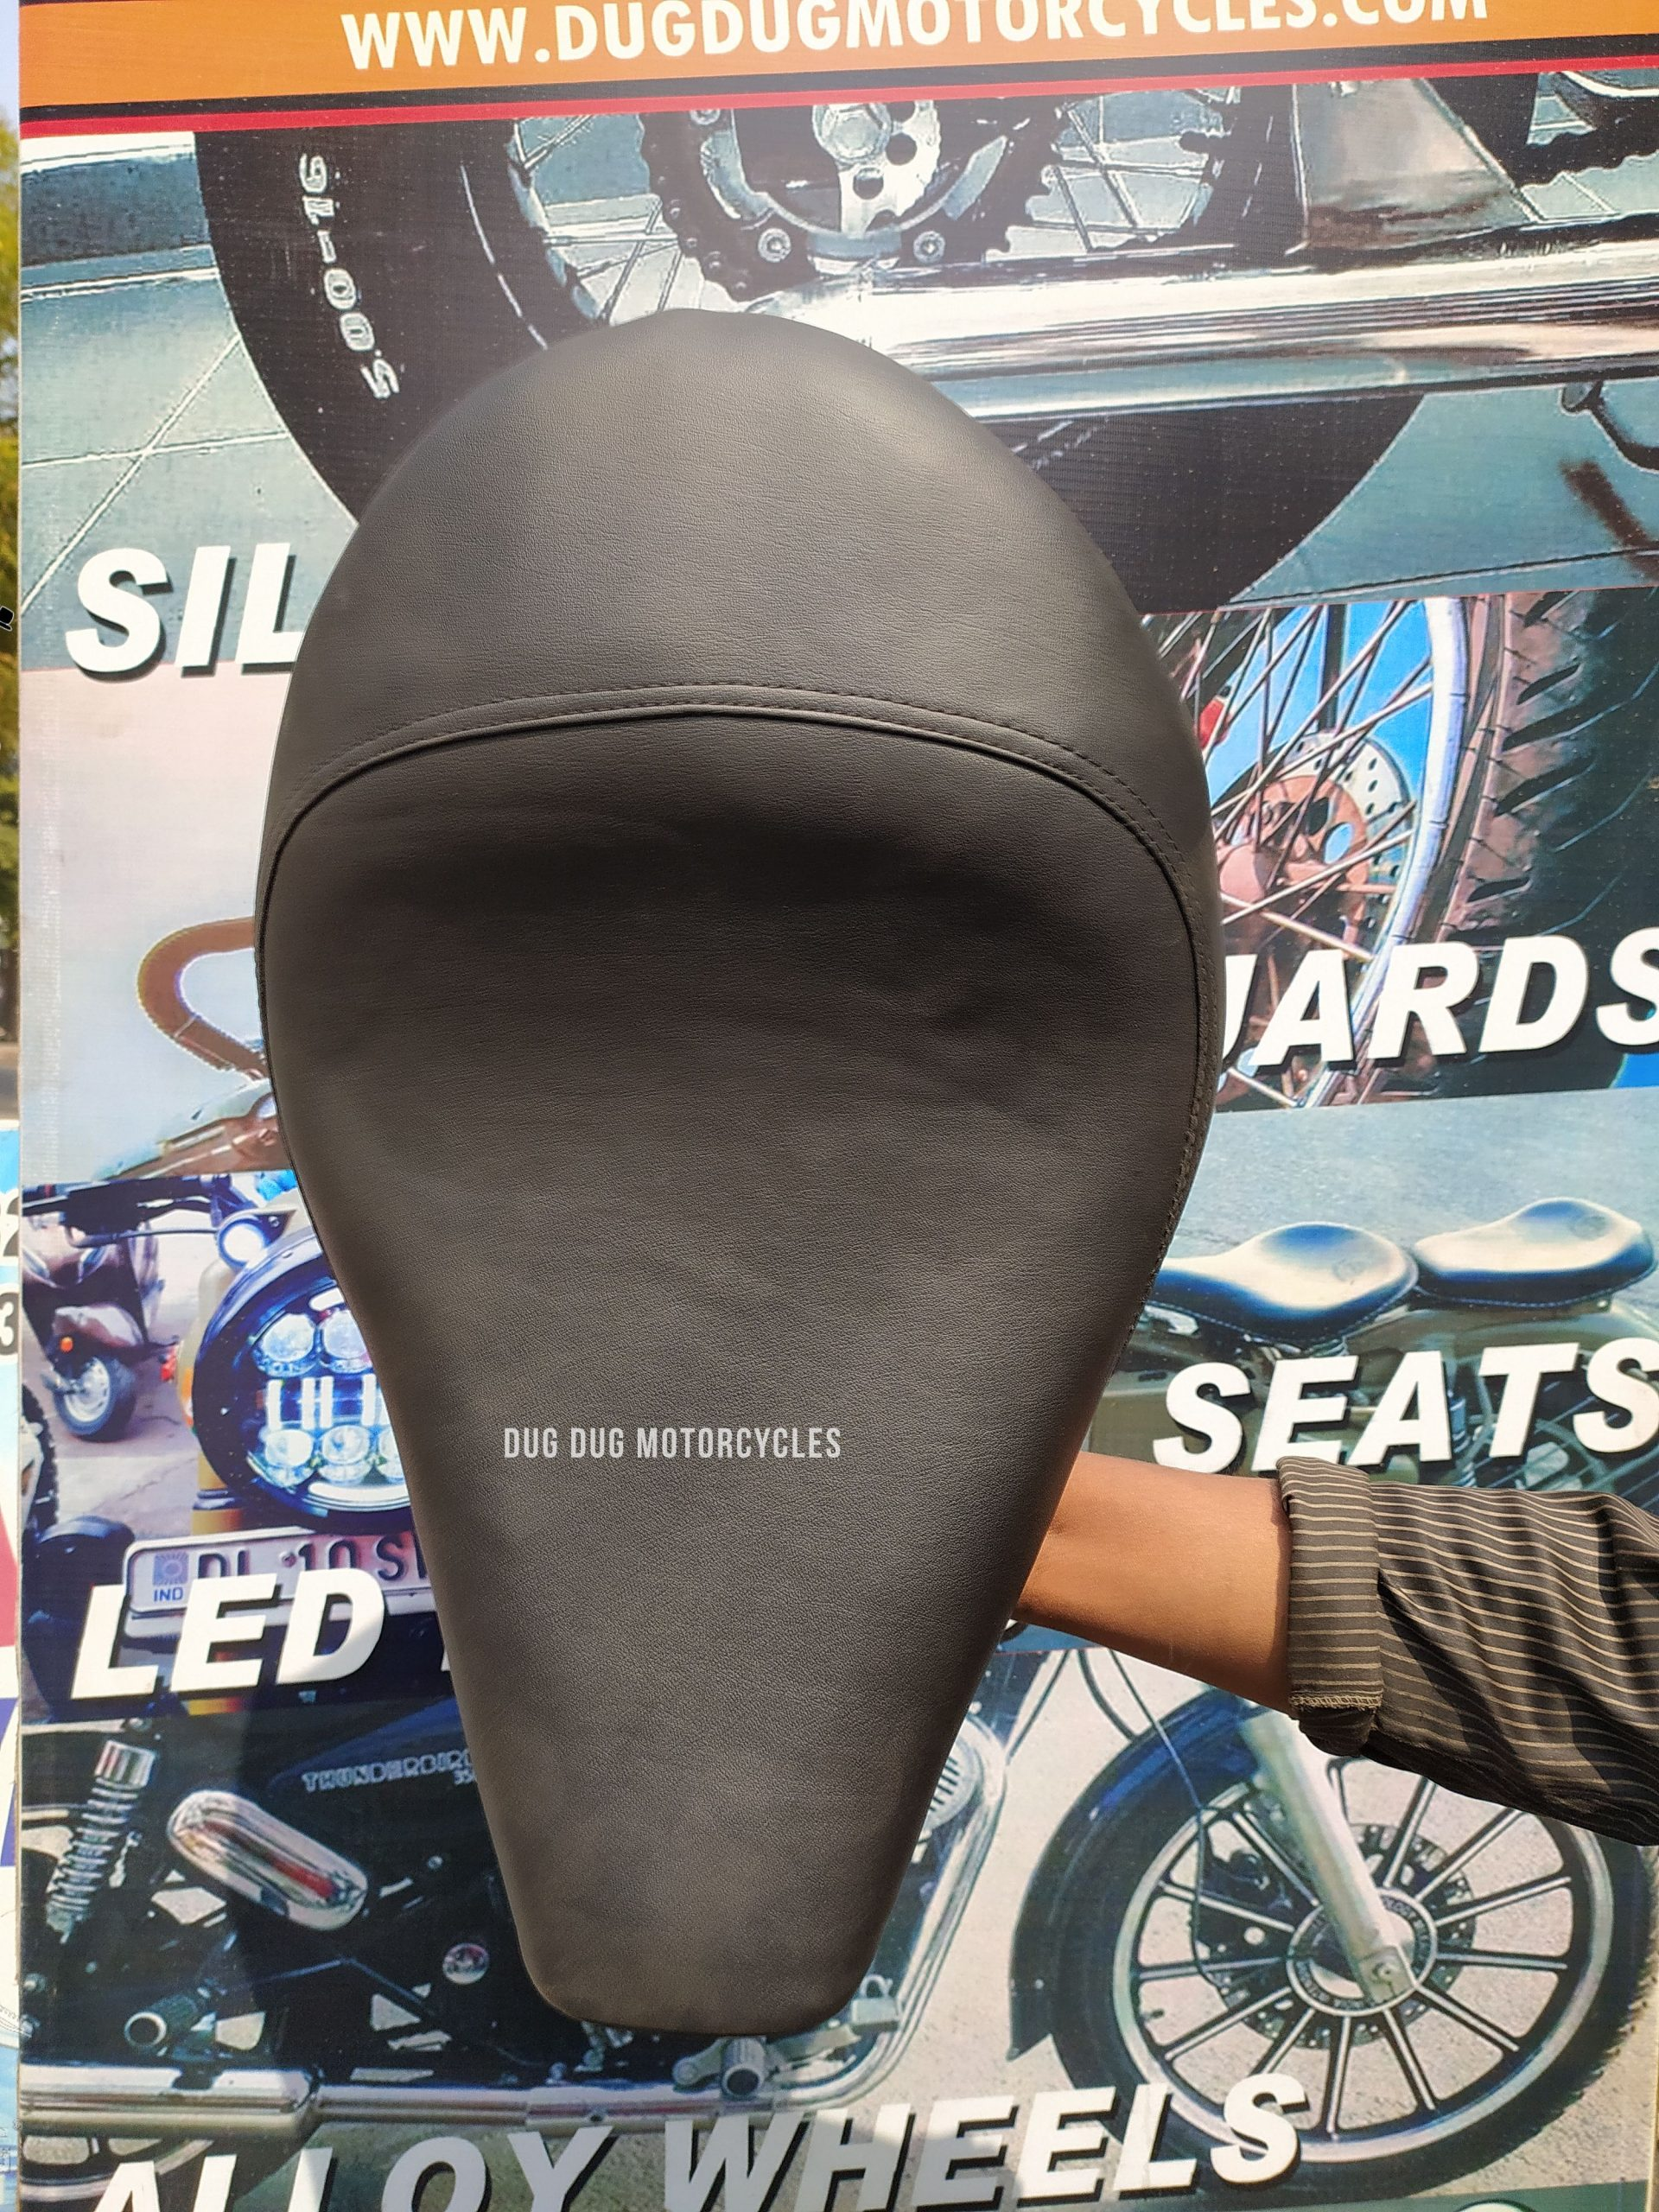 New Harley Single Seat for Royal Enfield Classic 350/500, Standard, Electra